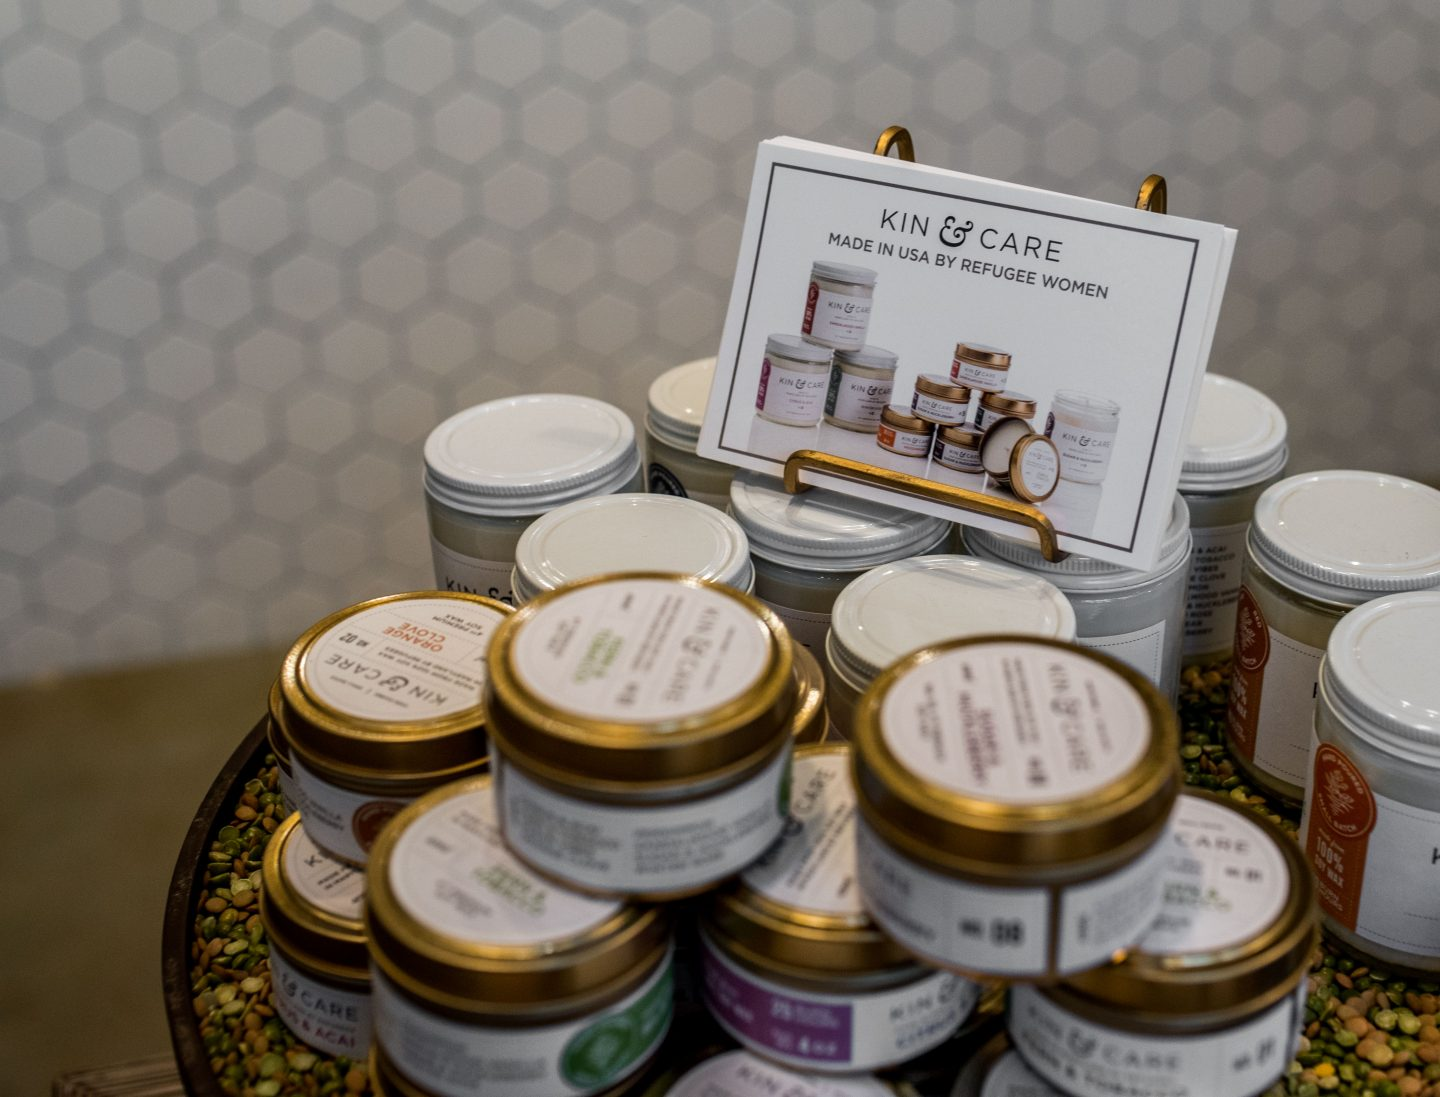 Kin & care candles